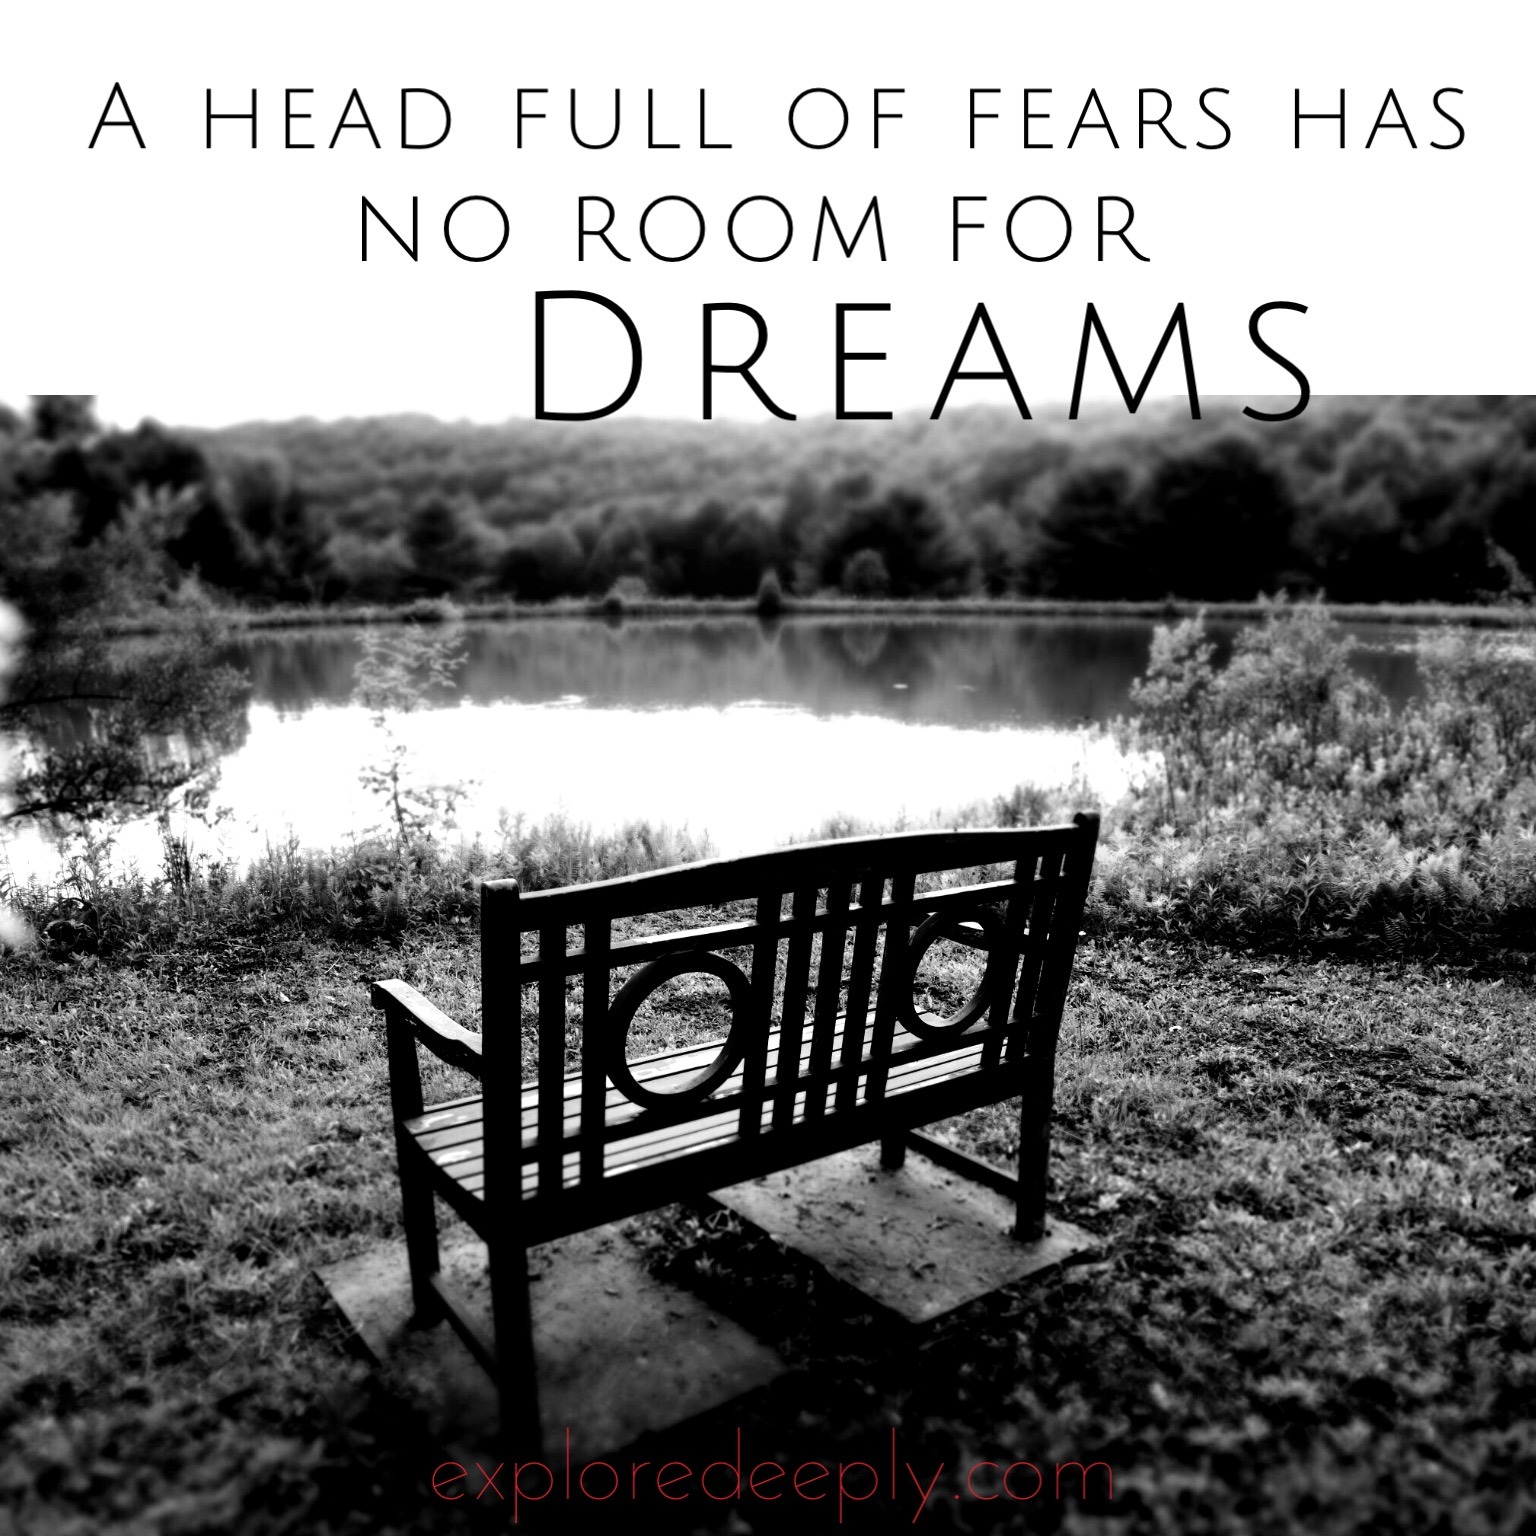 A head full of fears has no room for dreams. Explore Deeply Chloe Rain